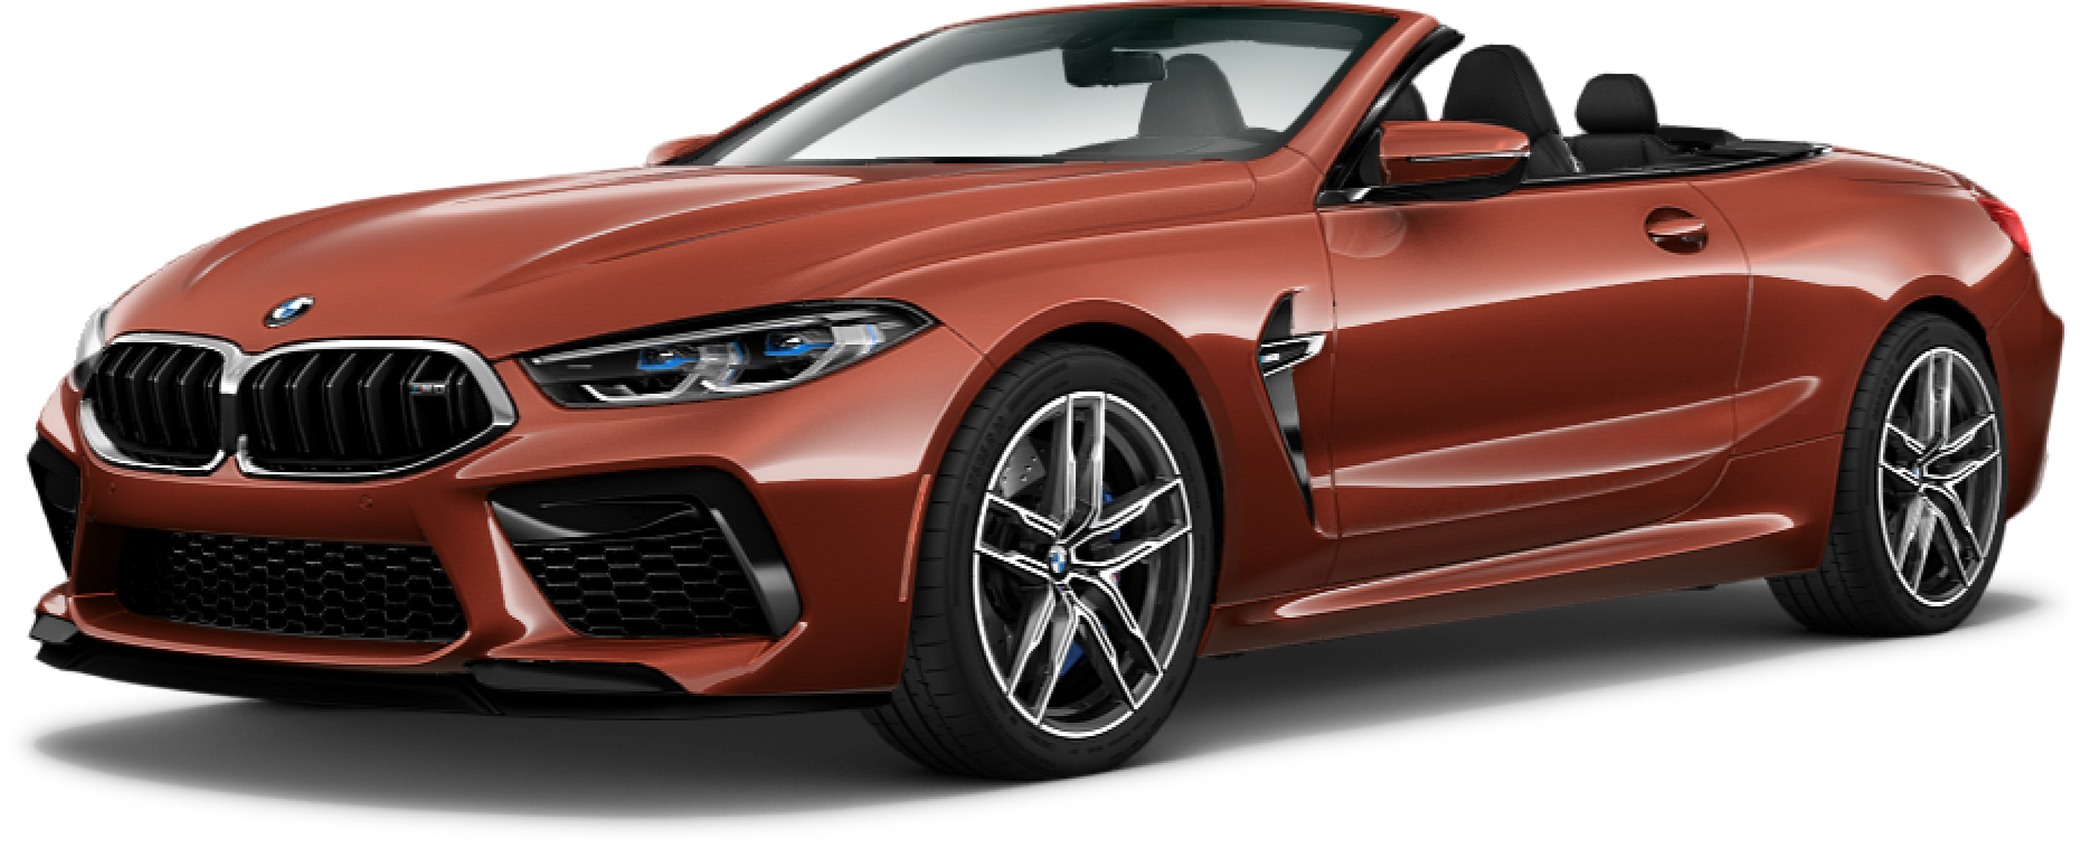 2020 Bmw M8 Incentives Specials Offers In Southampton Ny